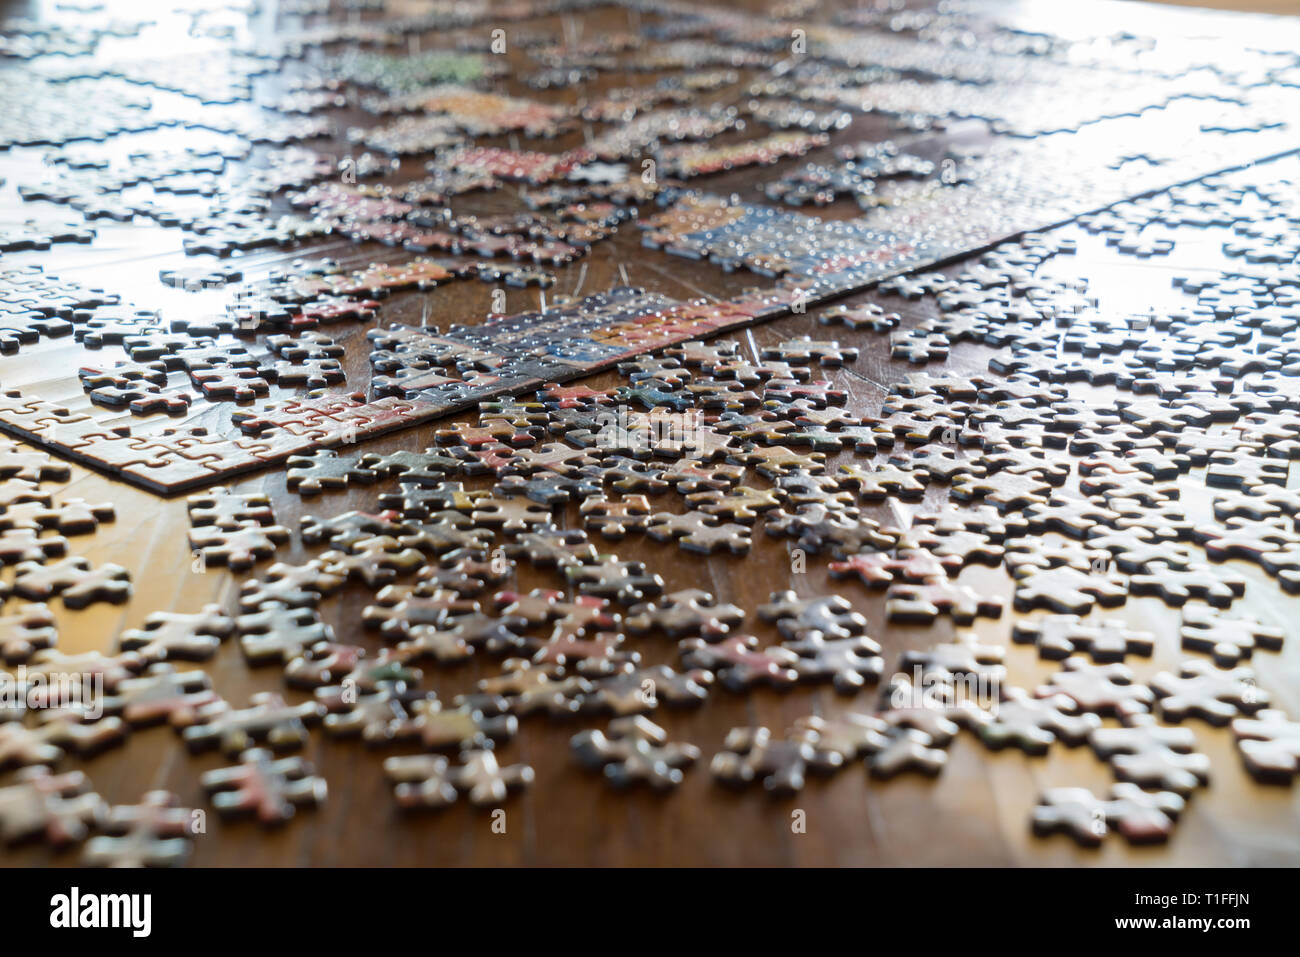 Incomplete Jigsaw puzzle, pieces on table - Stock Image